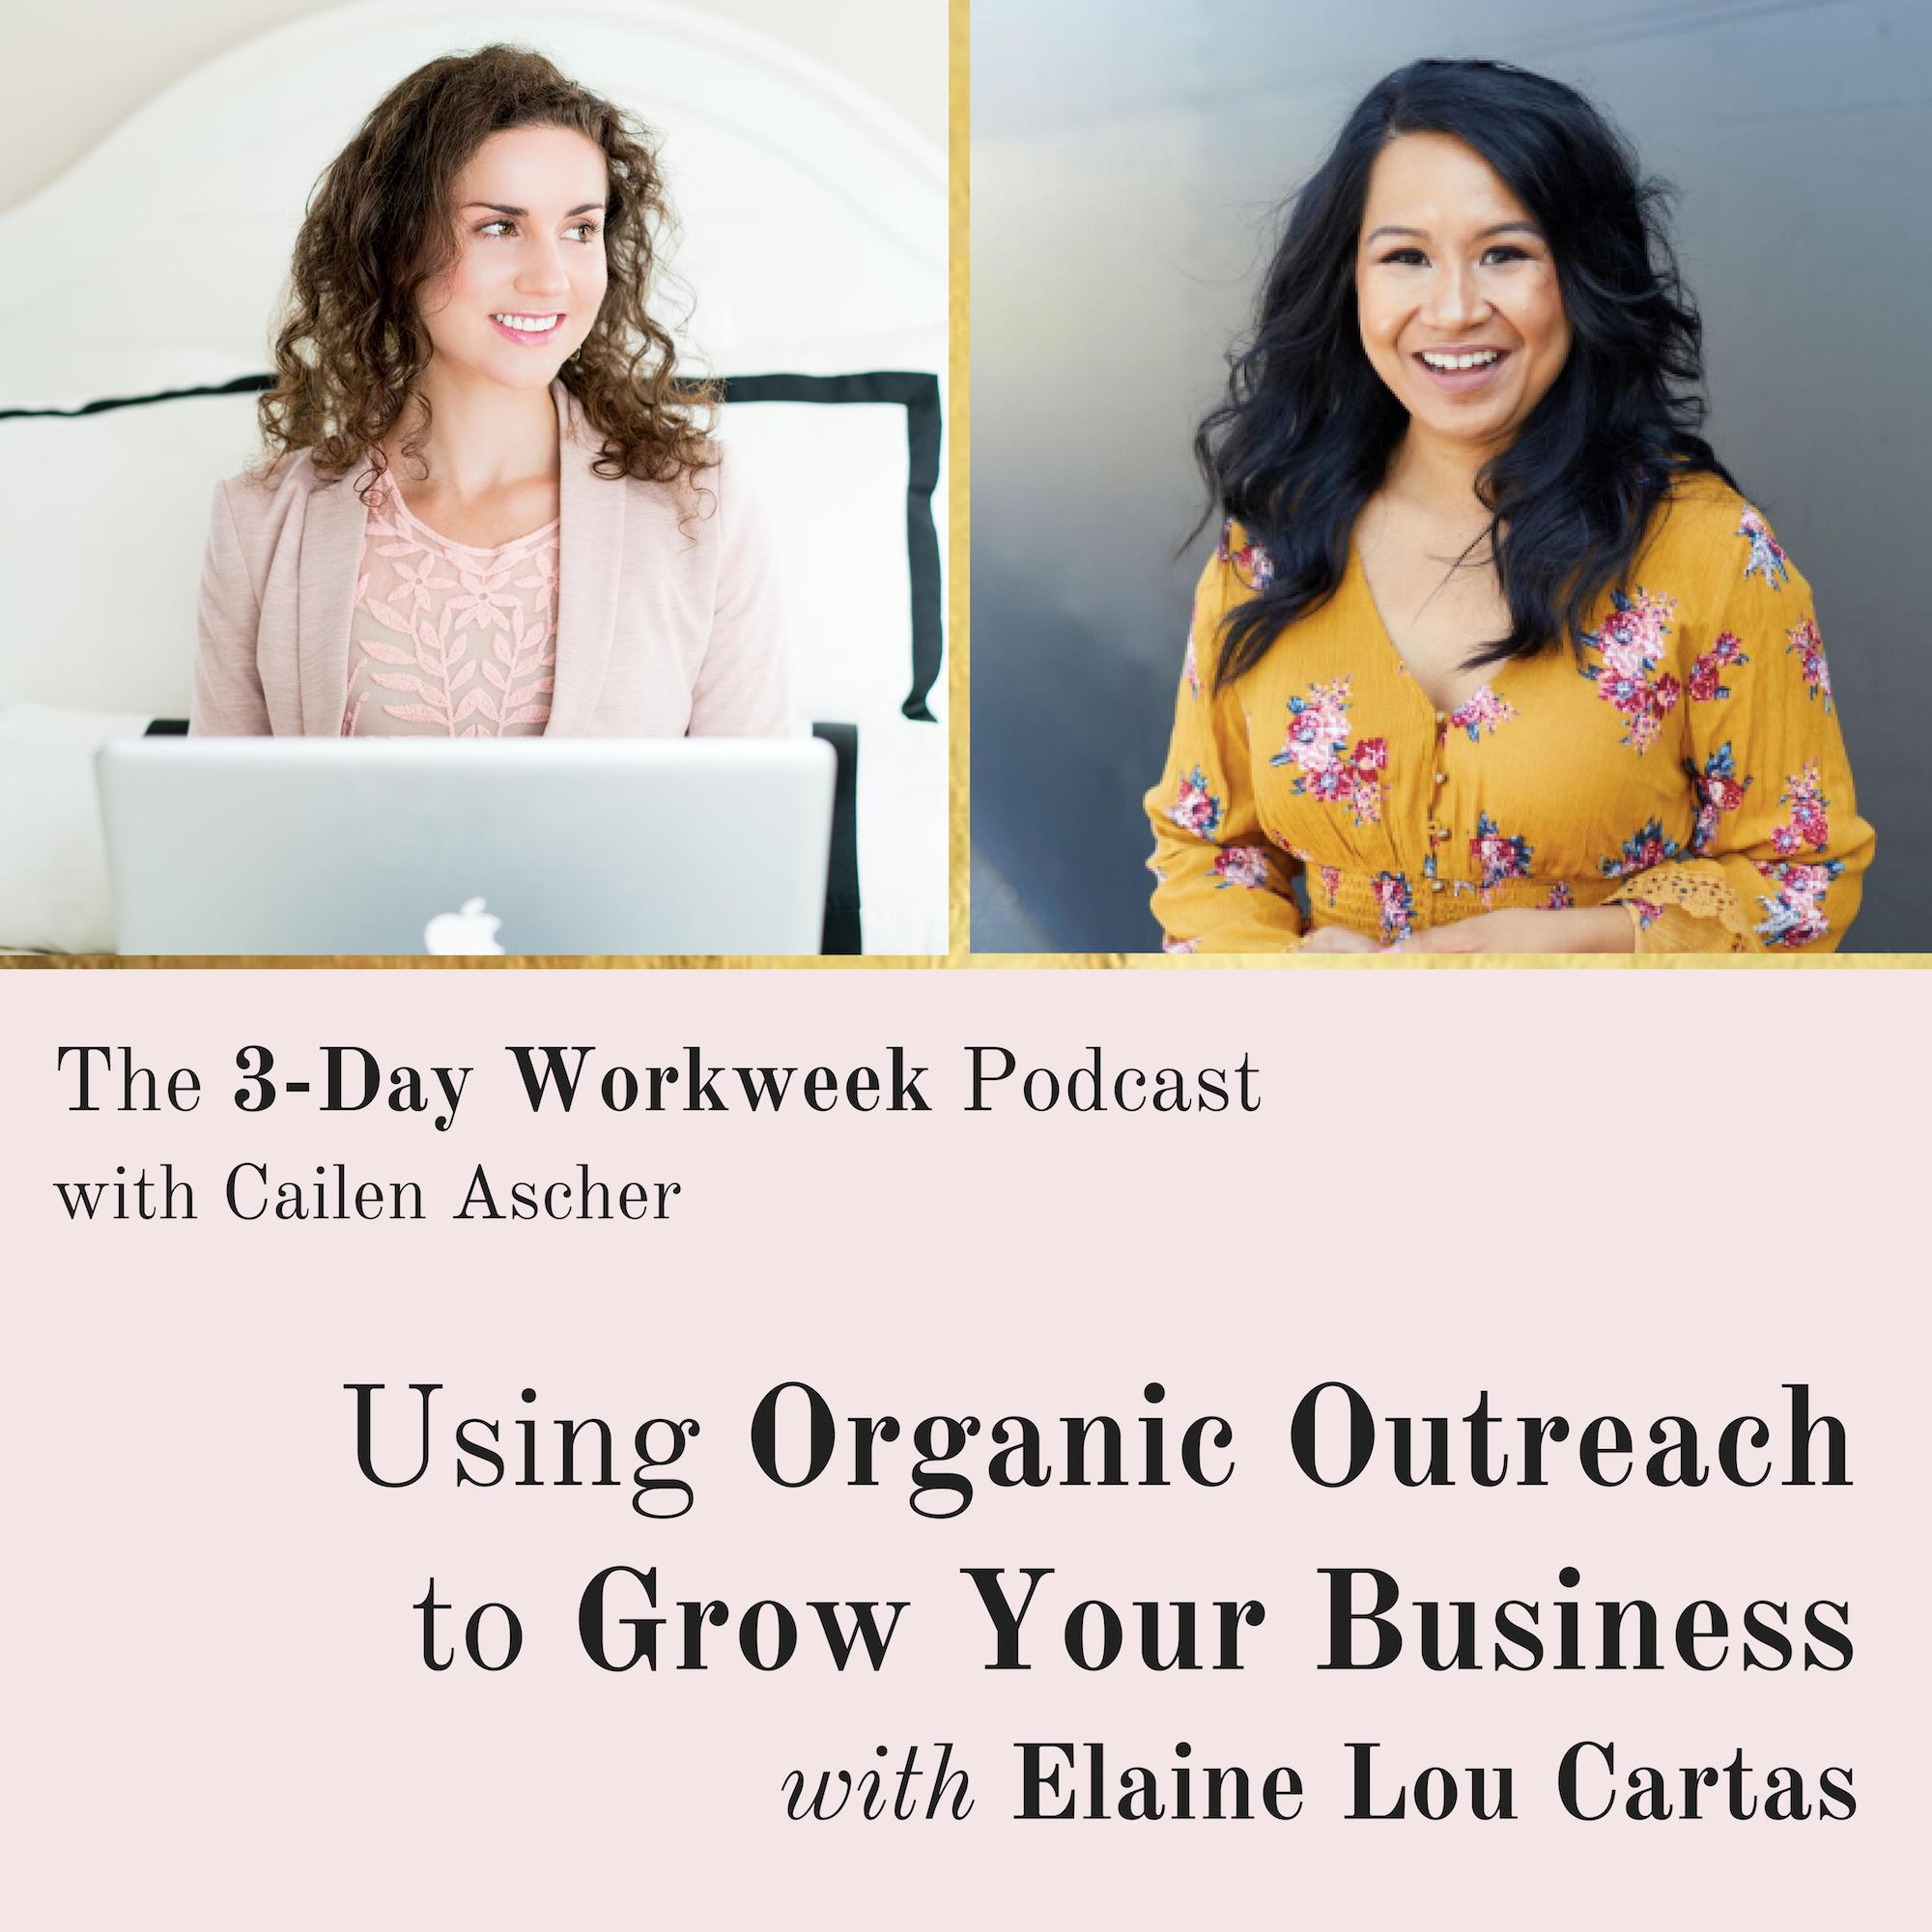 The 3-Day Workweek Podcast with Cailen Ascher - 2019-03-26 - Using Organic Outreach to Grow Your Business with Elaine Lou Cartas.jpg